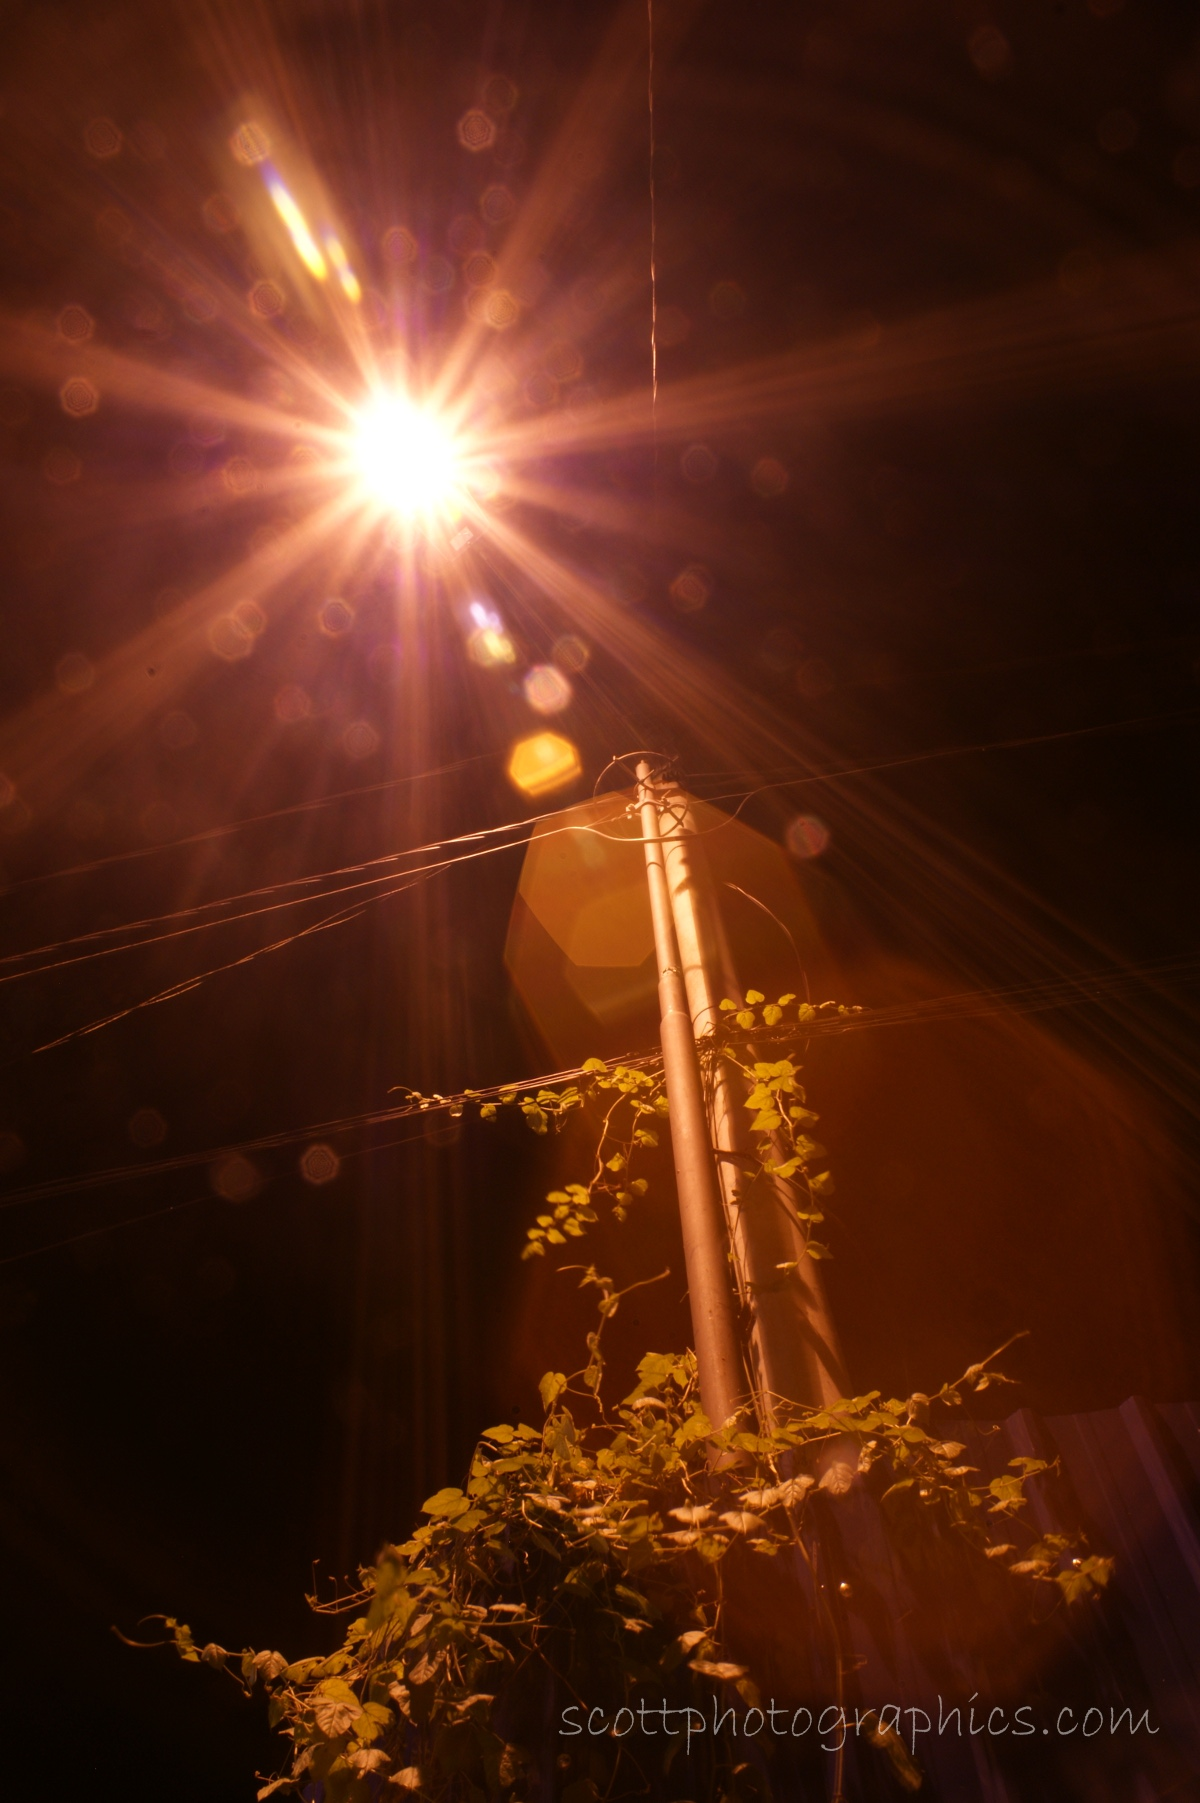 http://www.images.scottphotographics.com/shot-of-the-day/%238/low-pressure-sodium-light-penang-malaysia.jpg